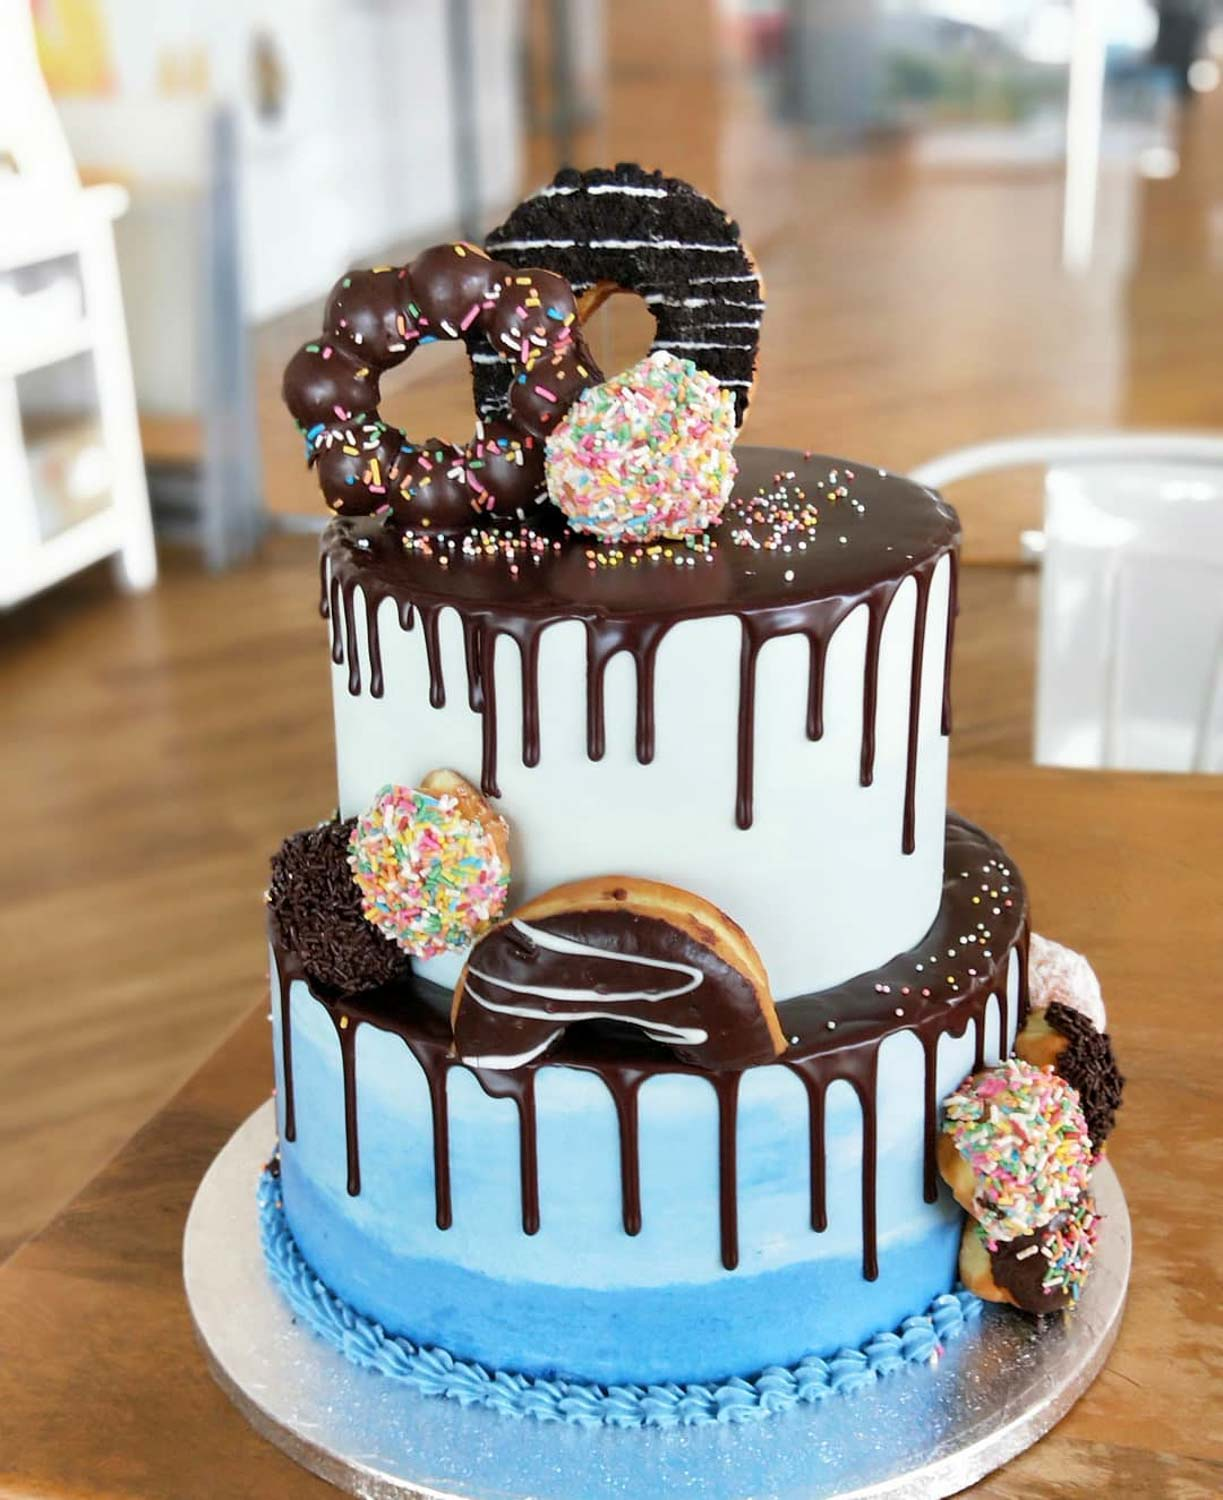 20 Birthday Cakes In Singapore Including Custom Cakes And No Frills Chocolate Cake